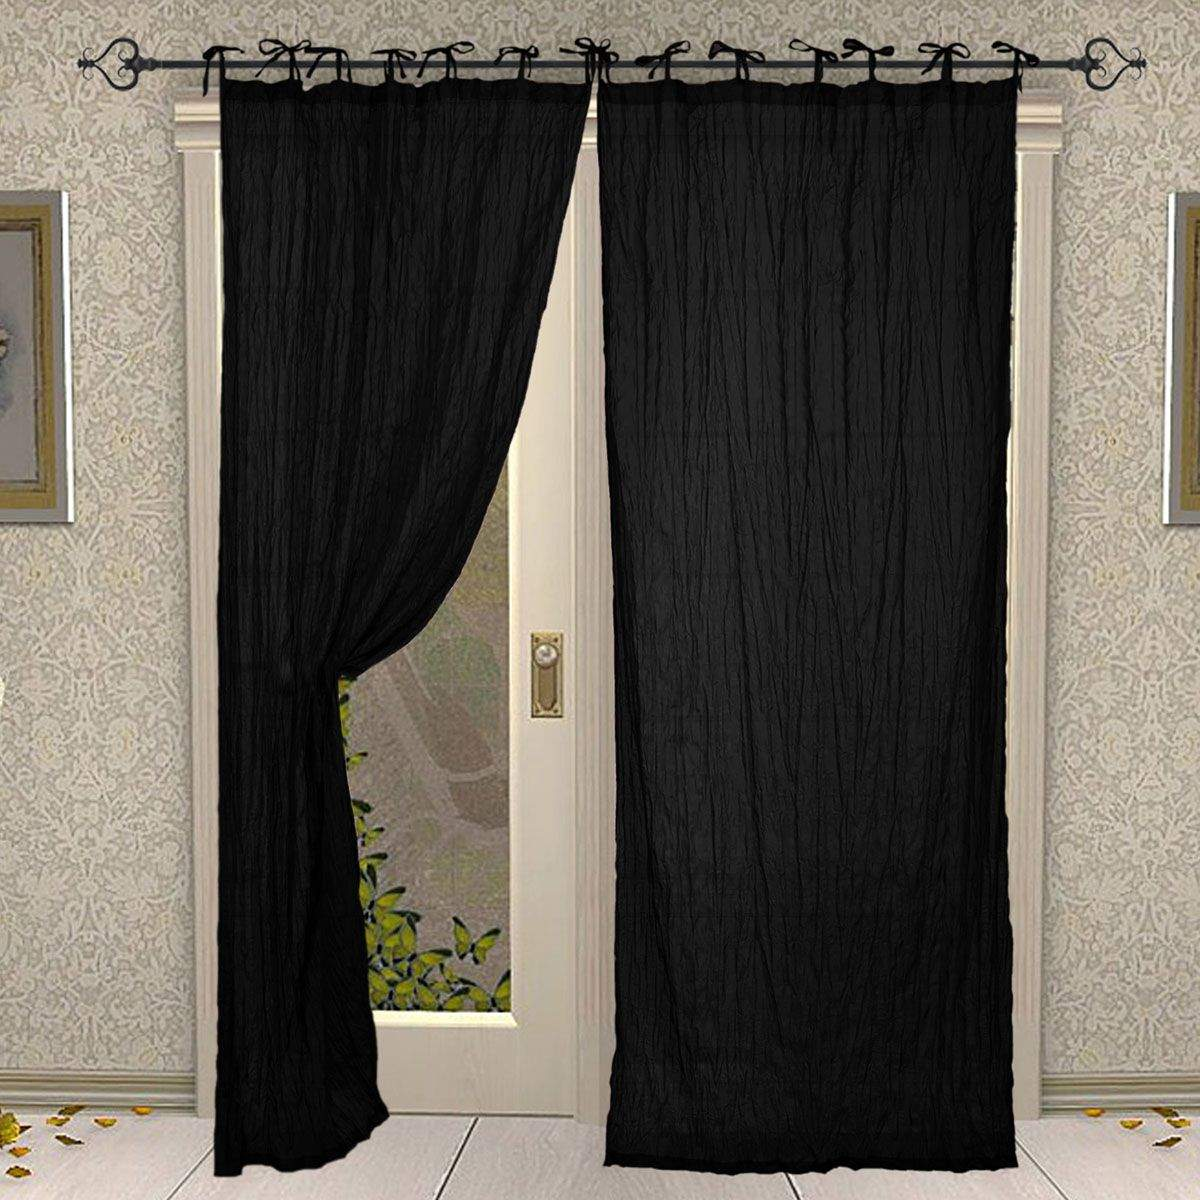 Tie Top Cotton Plain Solid Black Curtain for Windows and Door